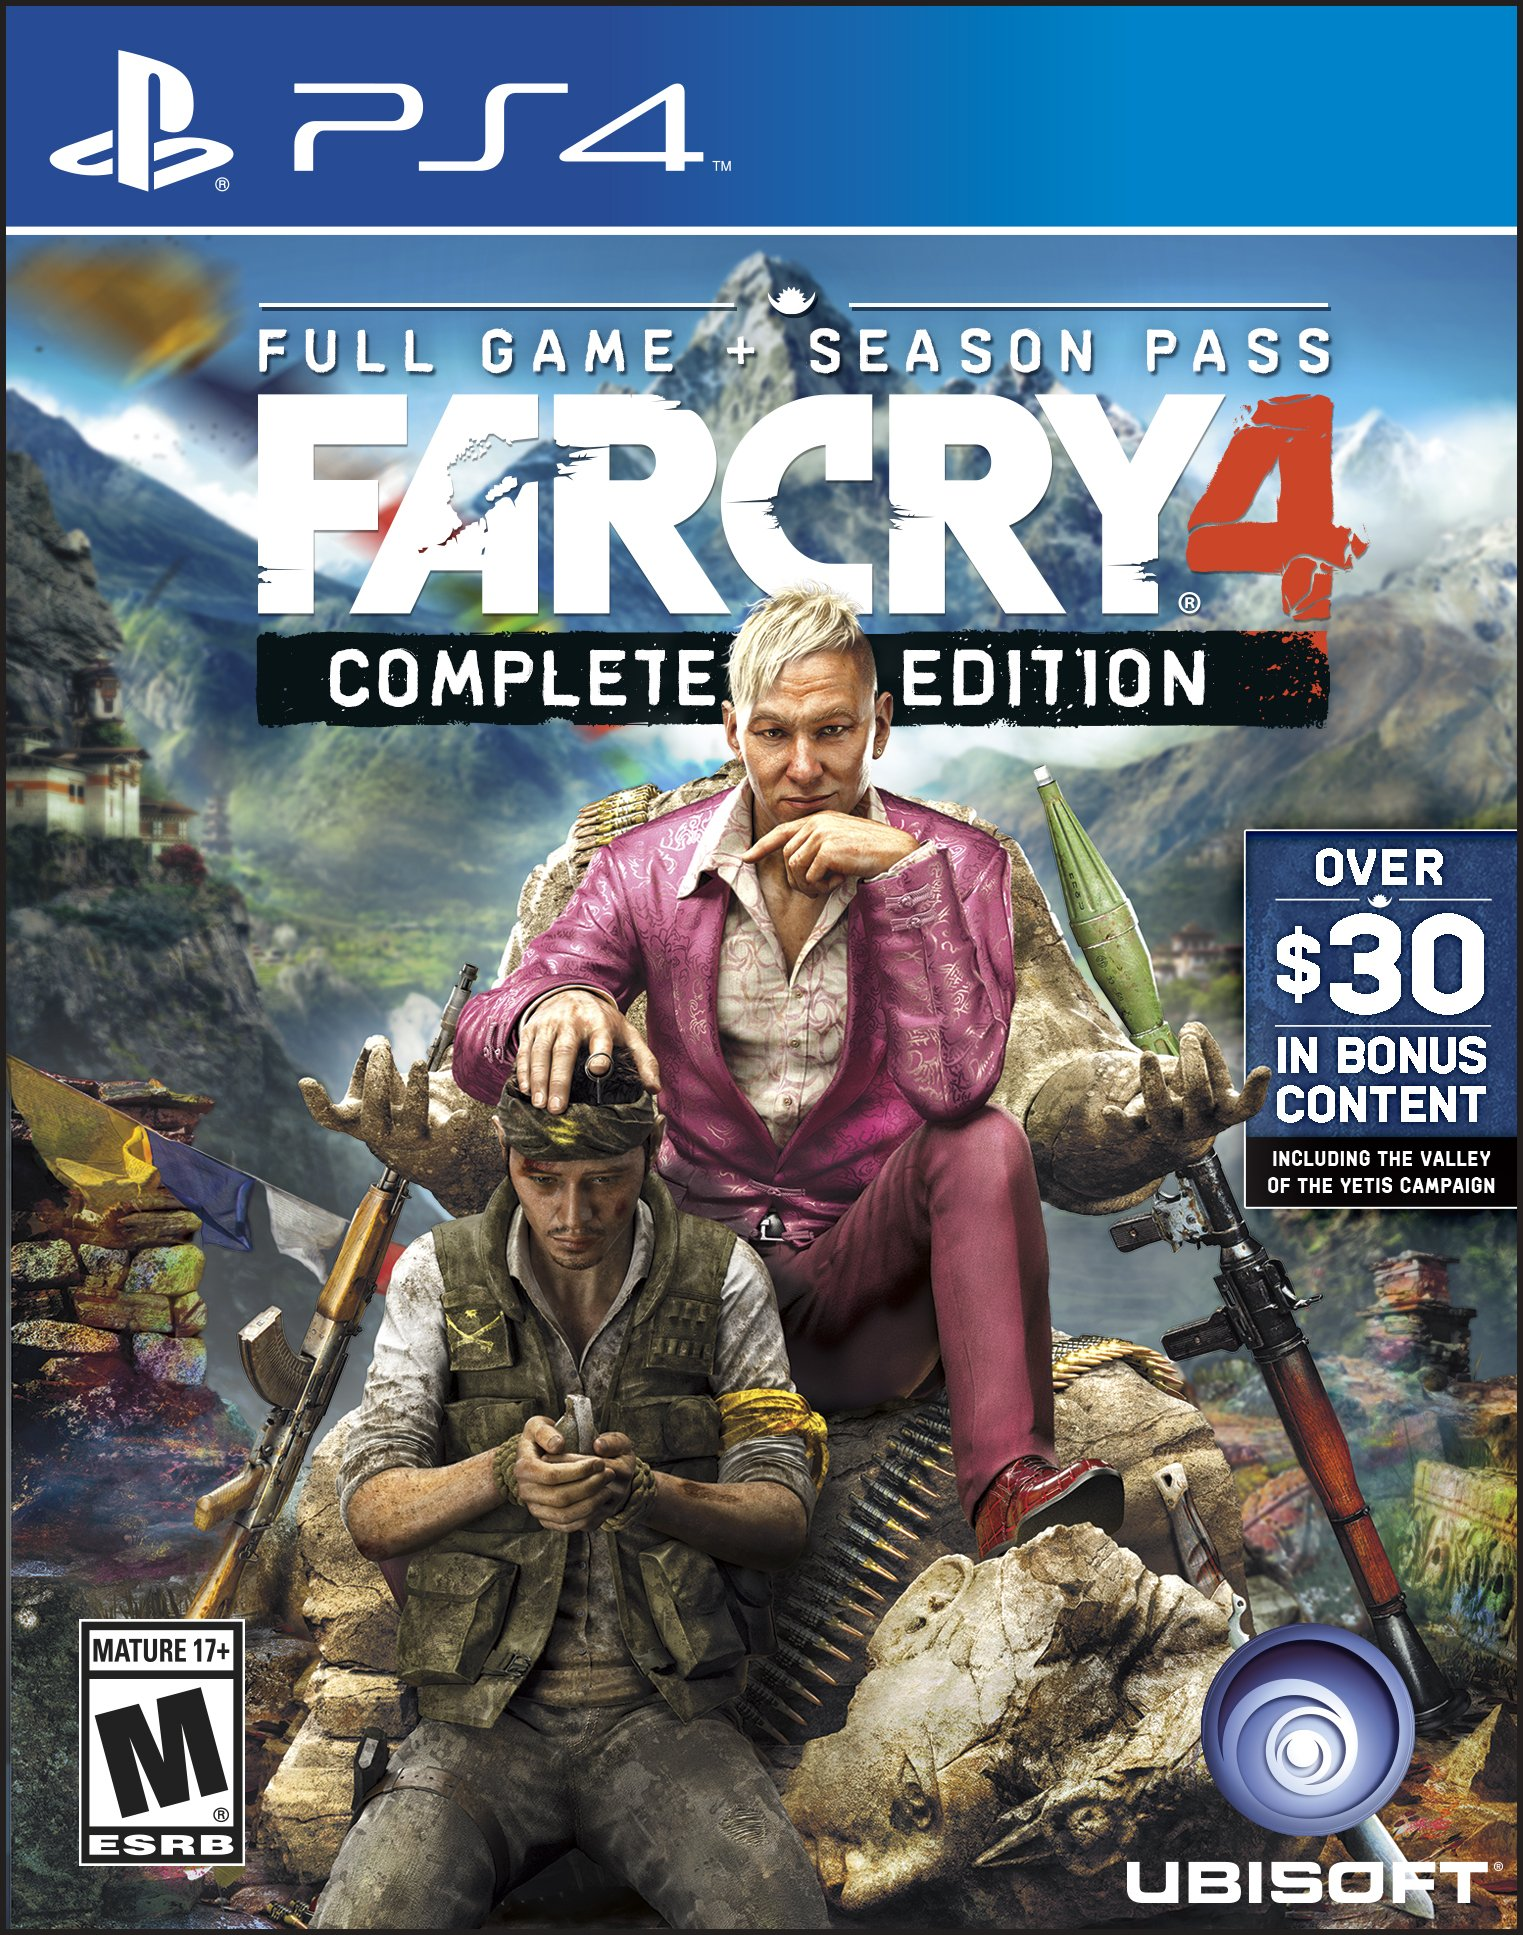 Far Cry 4 Complete Edition Release Date (Xbox One, PS4)